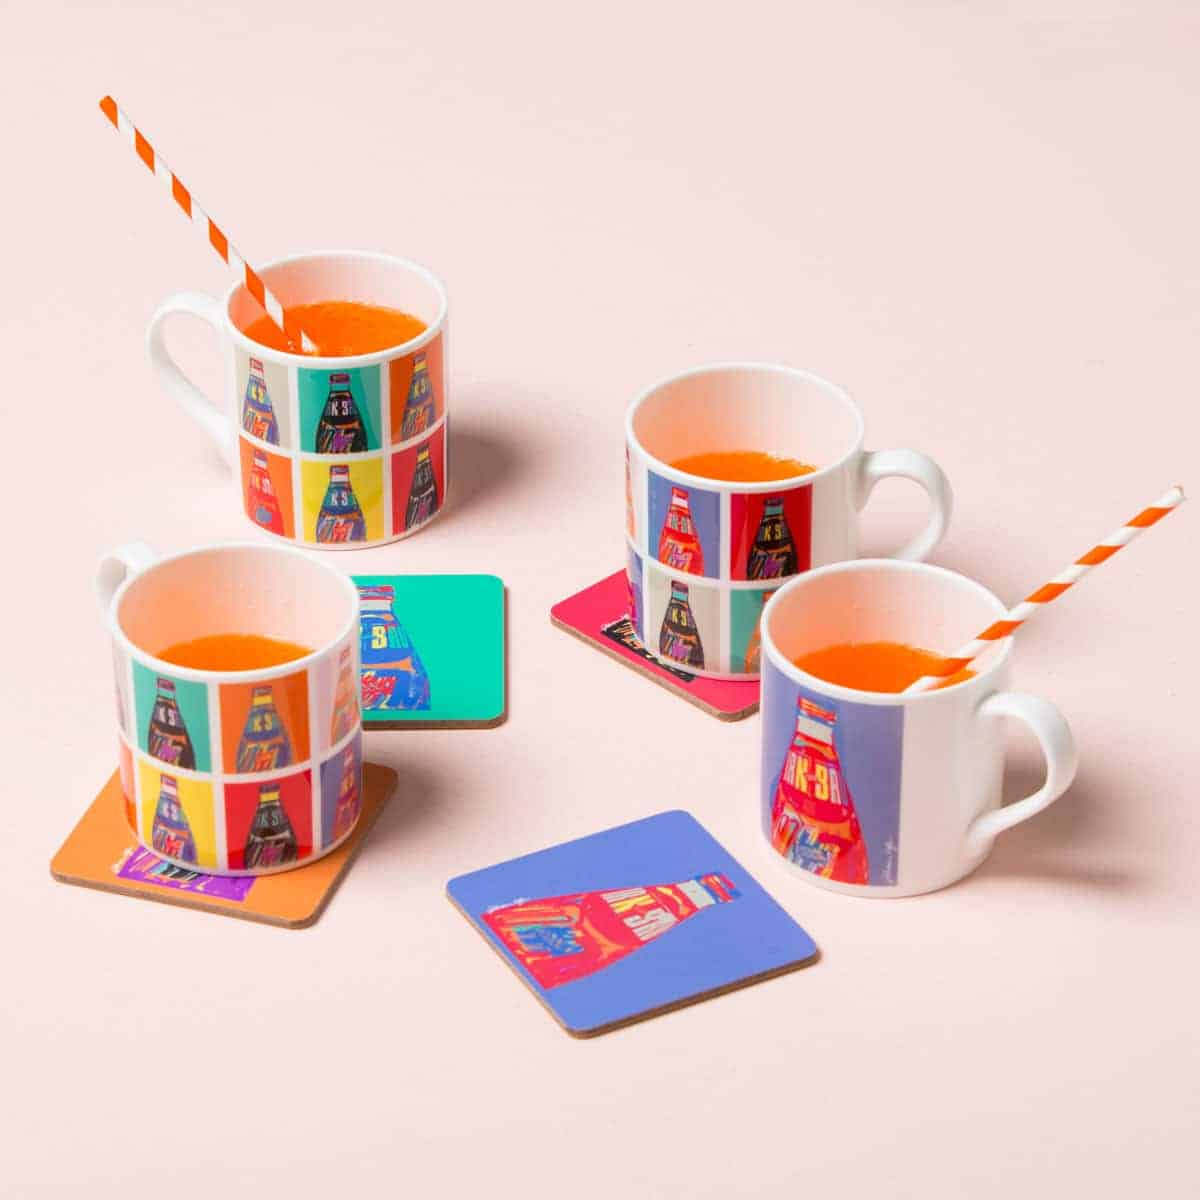 Irn Bru merchandise by Gillian Kyle